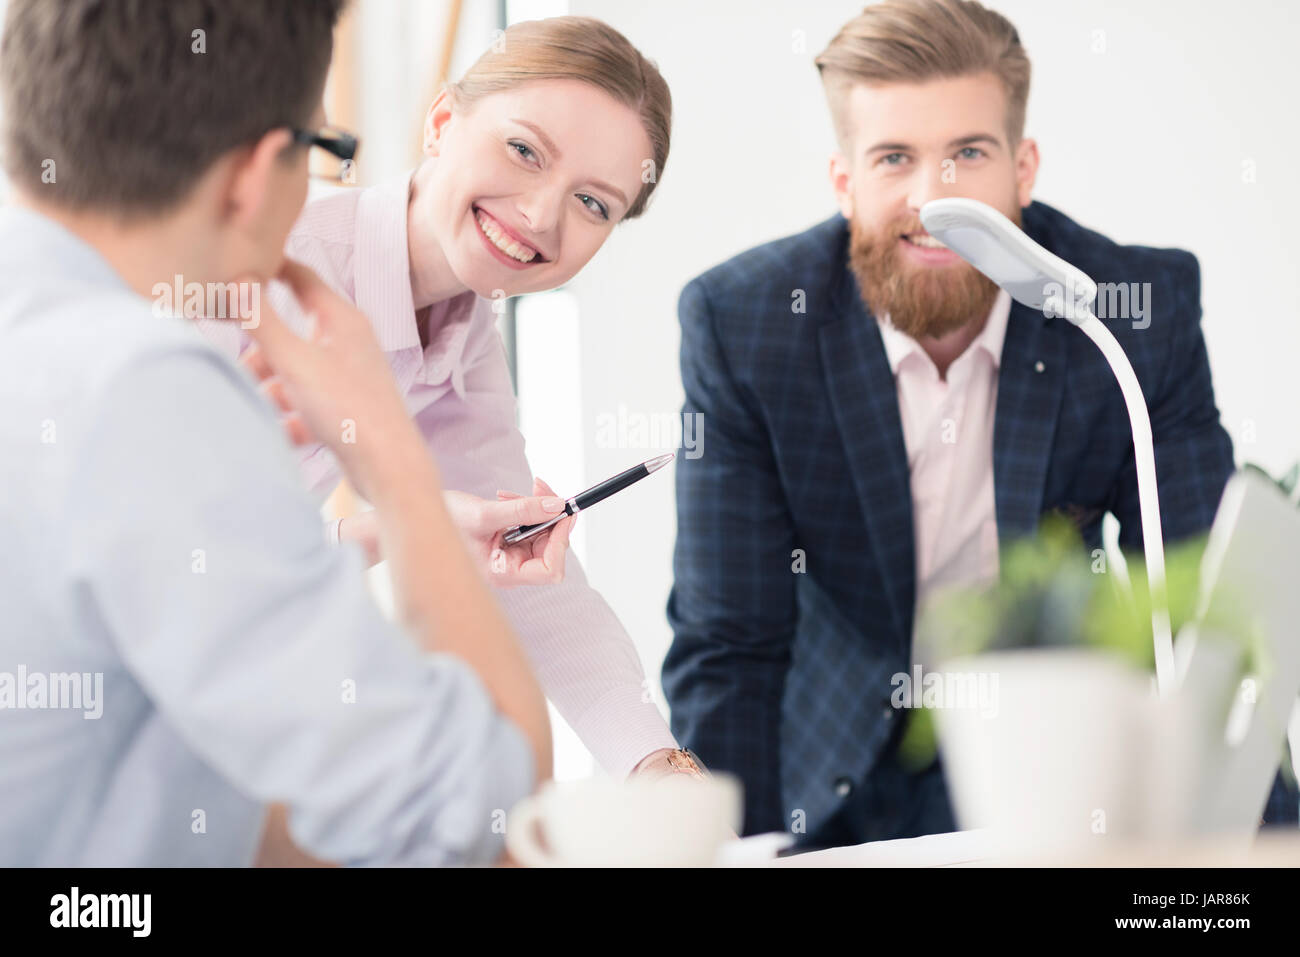 Young businesspeople working together - Stock Image